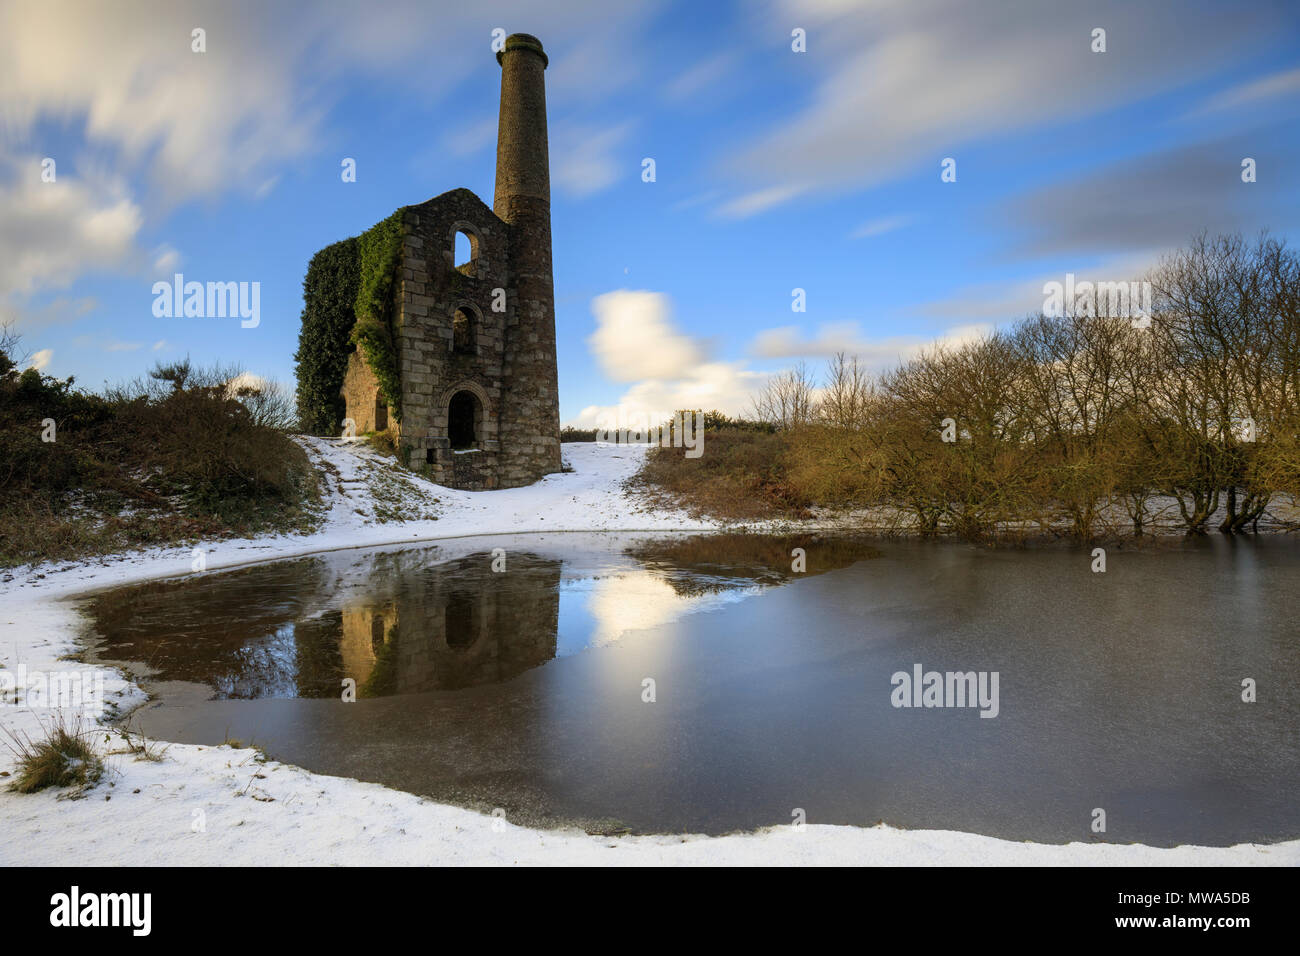 United Downs Engine House captured after a snow fall. - Stock Image